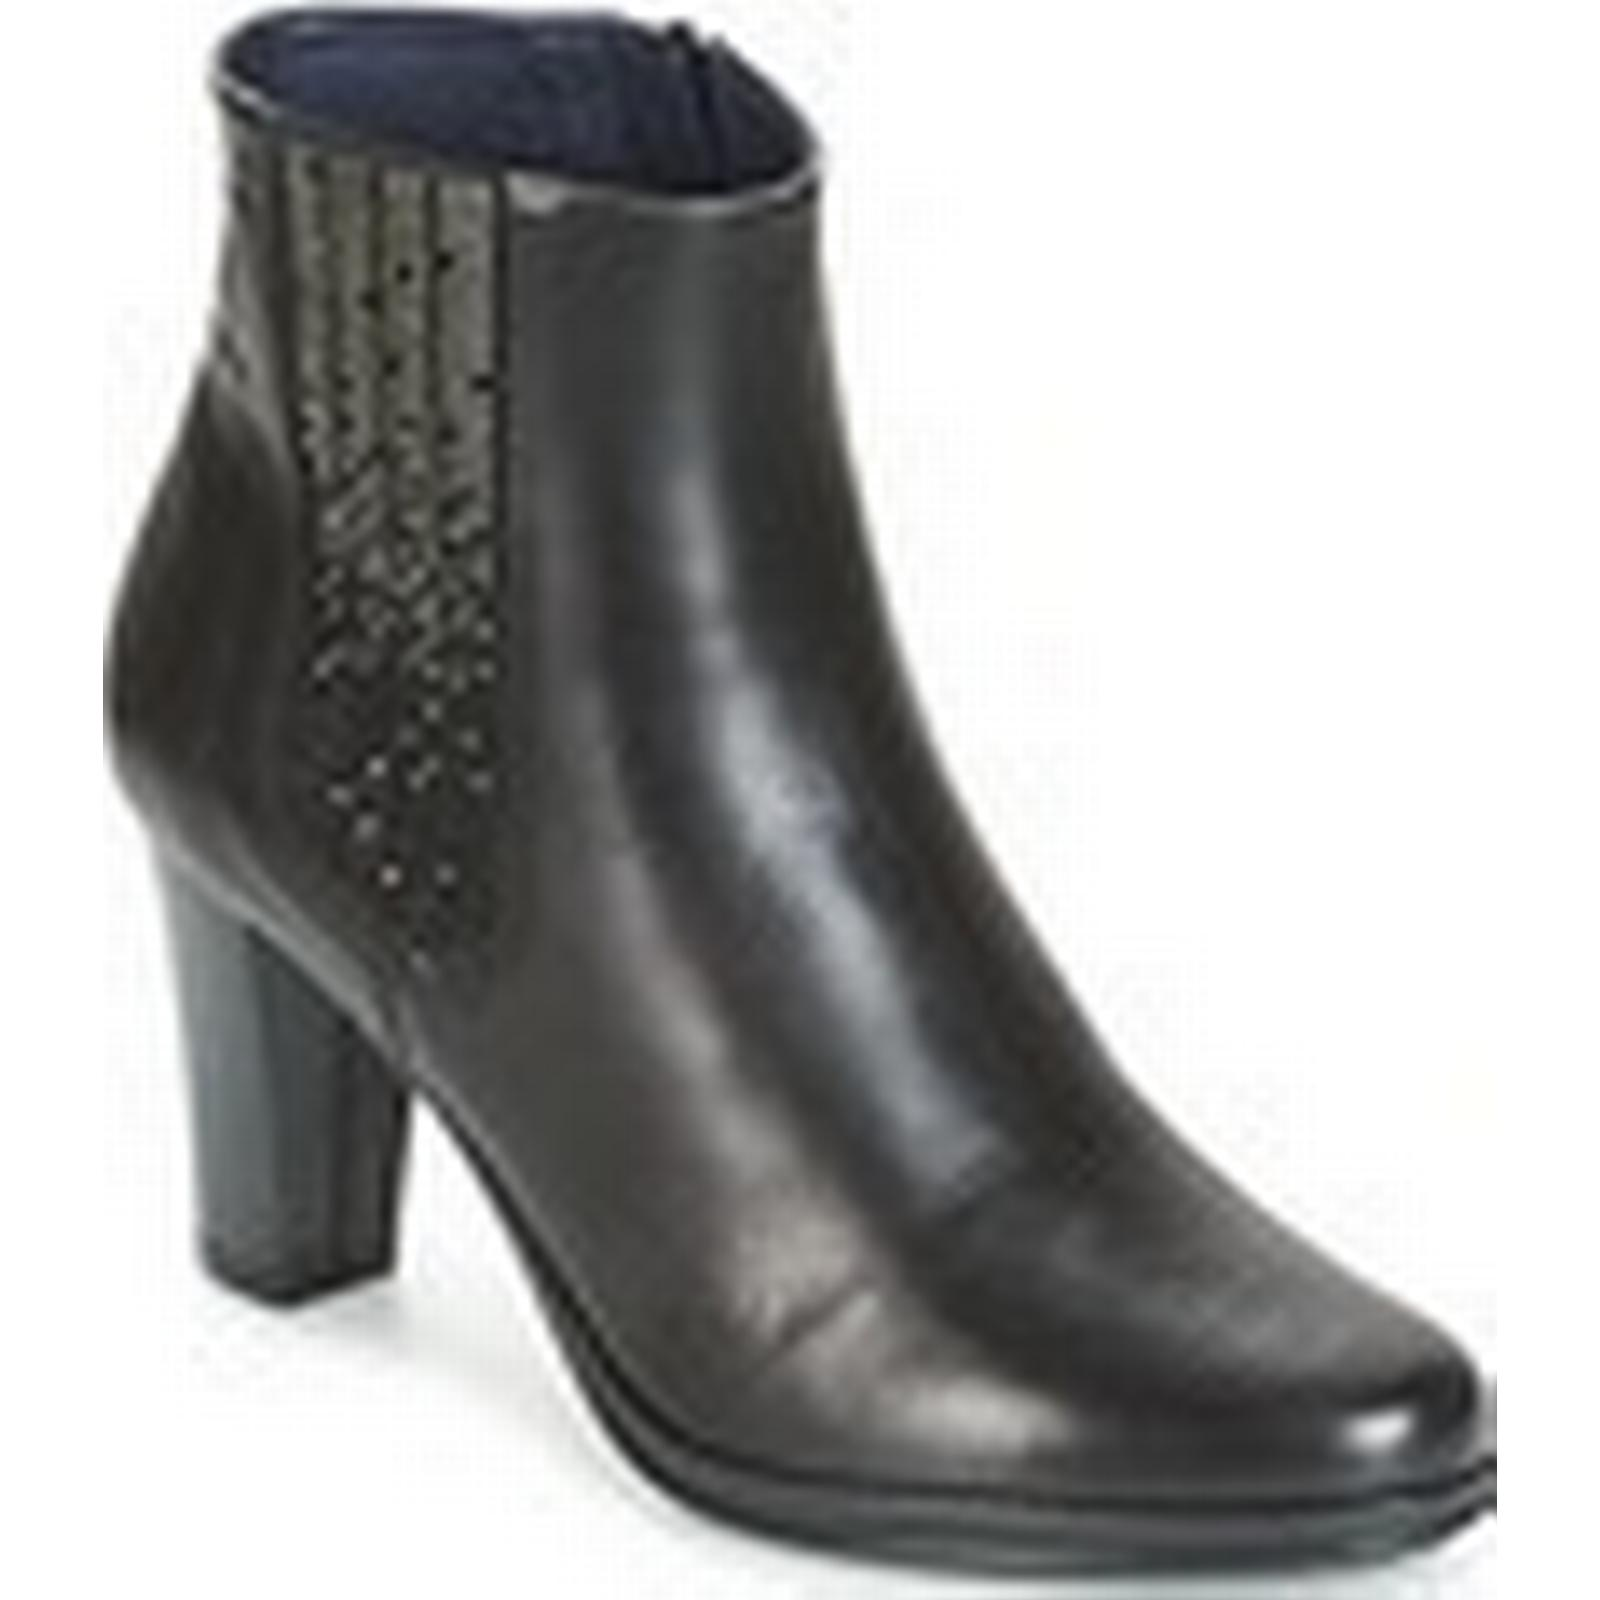 dorking luna femmes & #  27; s bottines faible bottines s en noir fa12f1